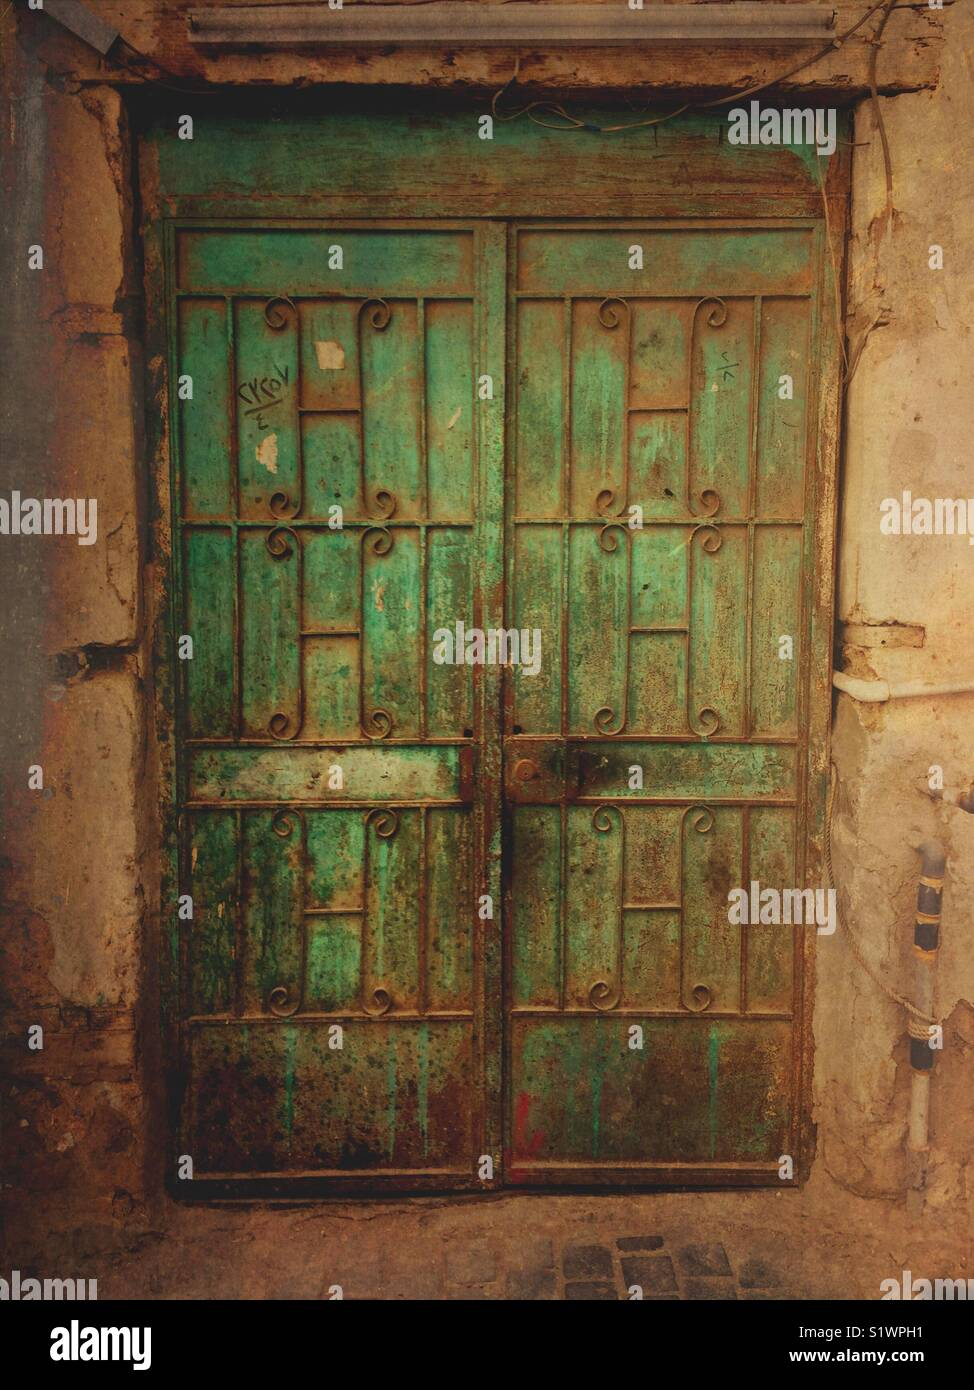 Old rusty gate at Historic Jeddah Saudi Arabia - Stock Image